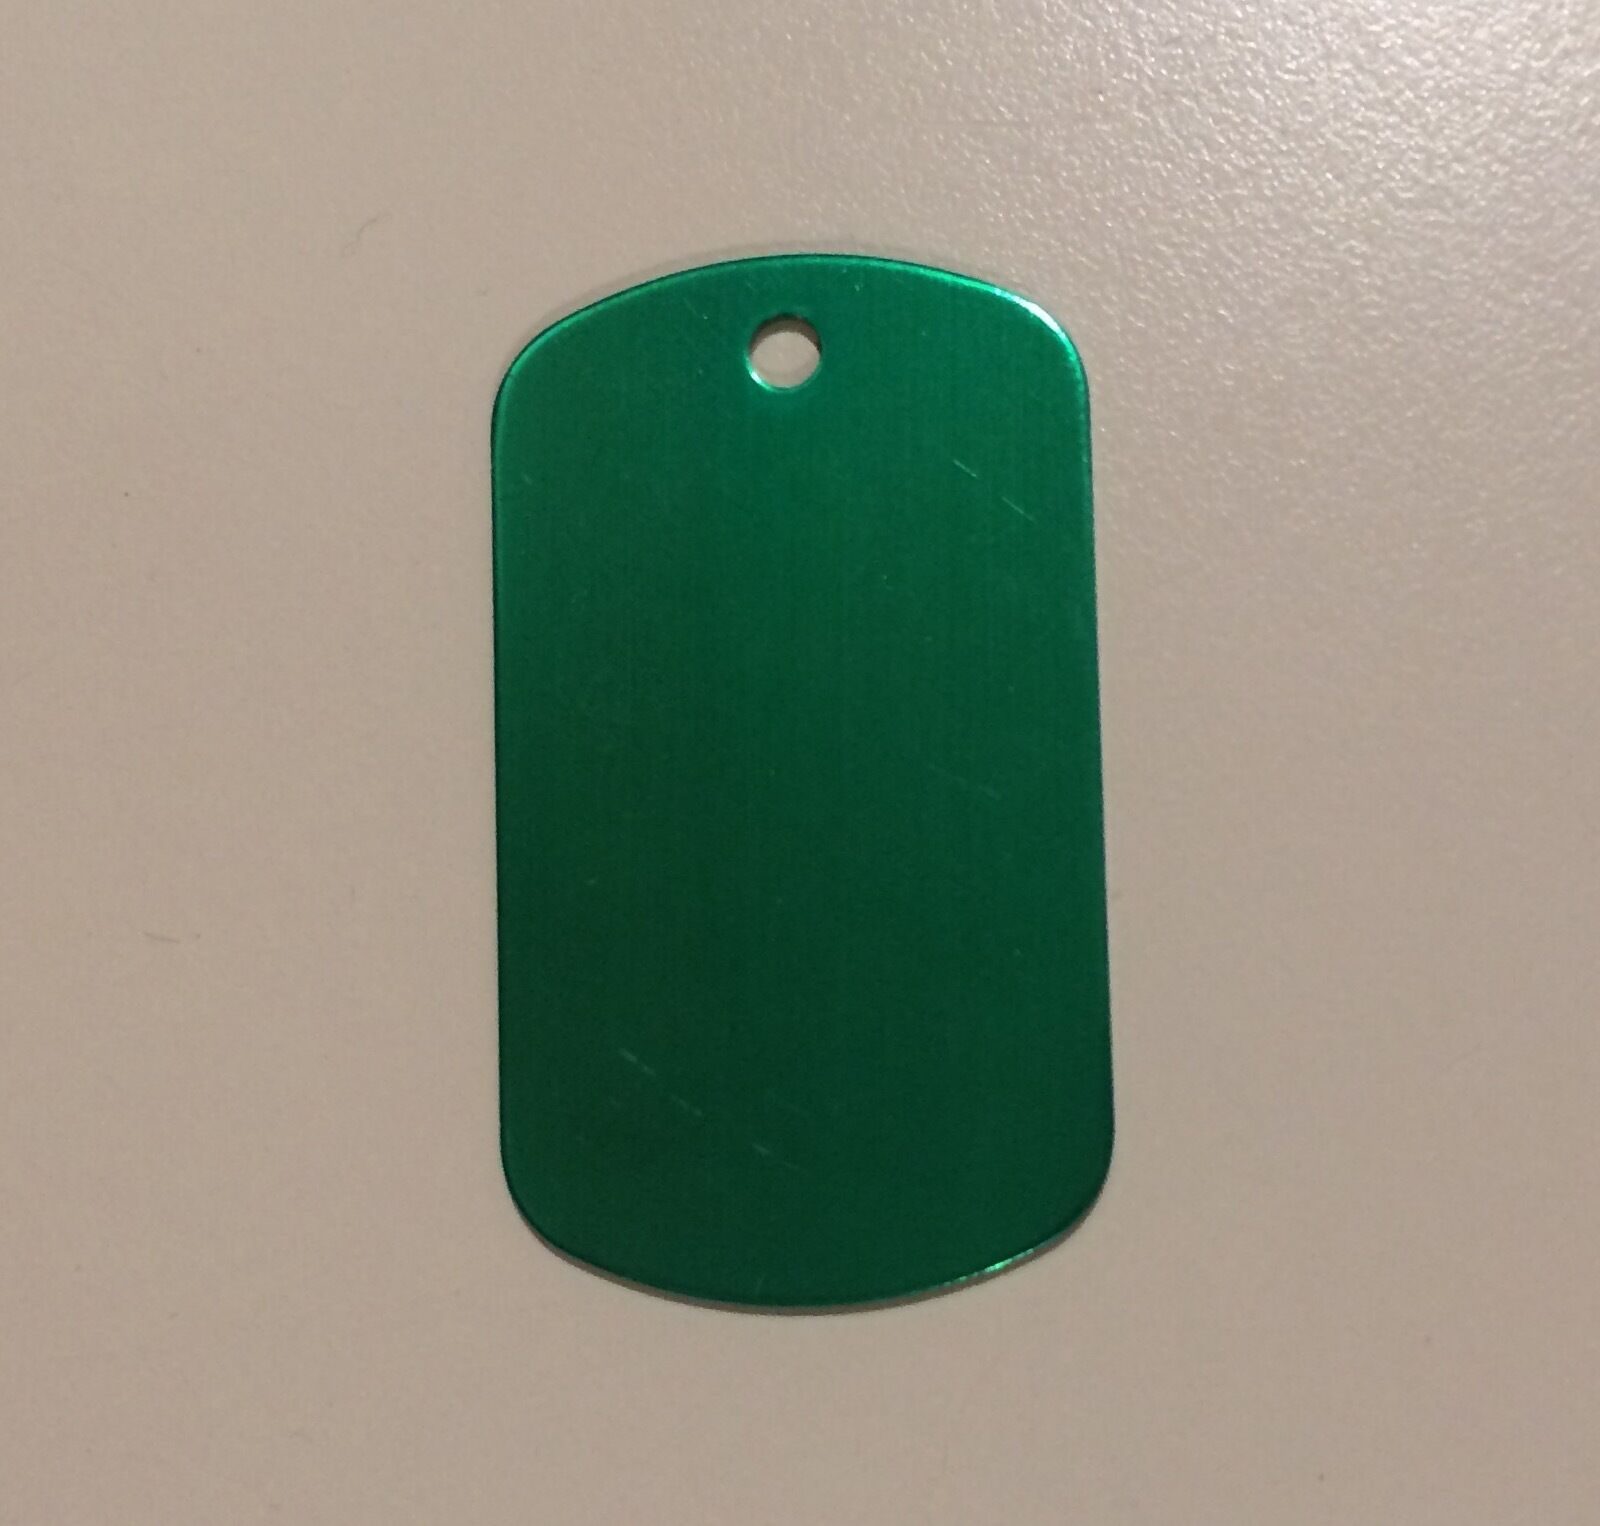 Personalized Metal Luggage tags (set of 5) with free cables. Five color options! Green